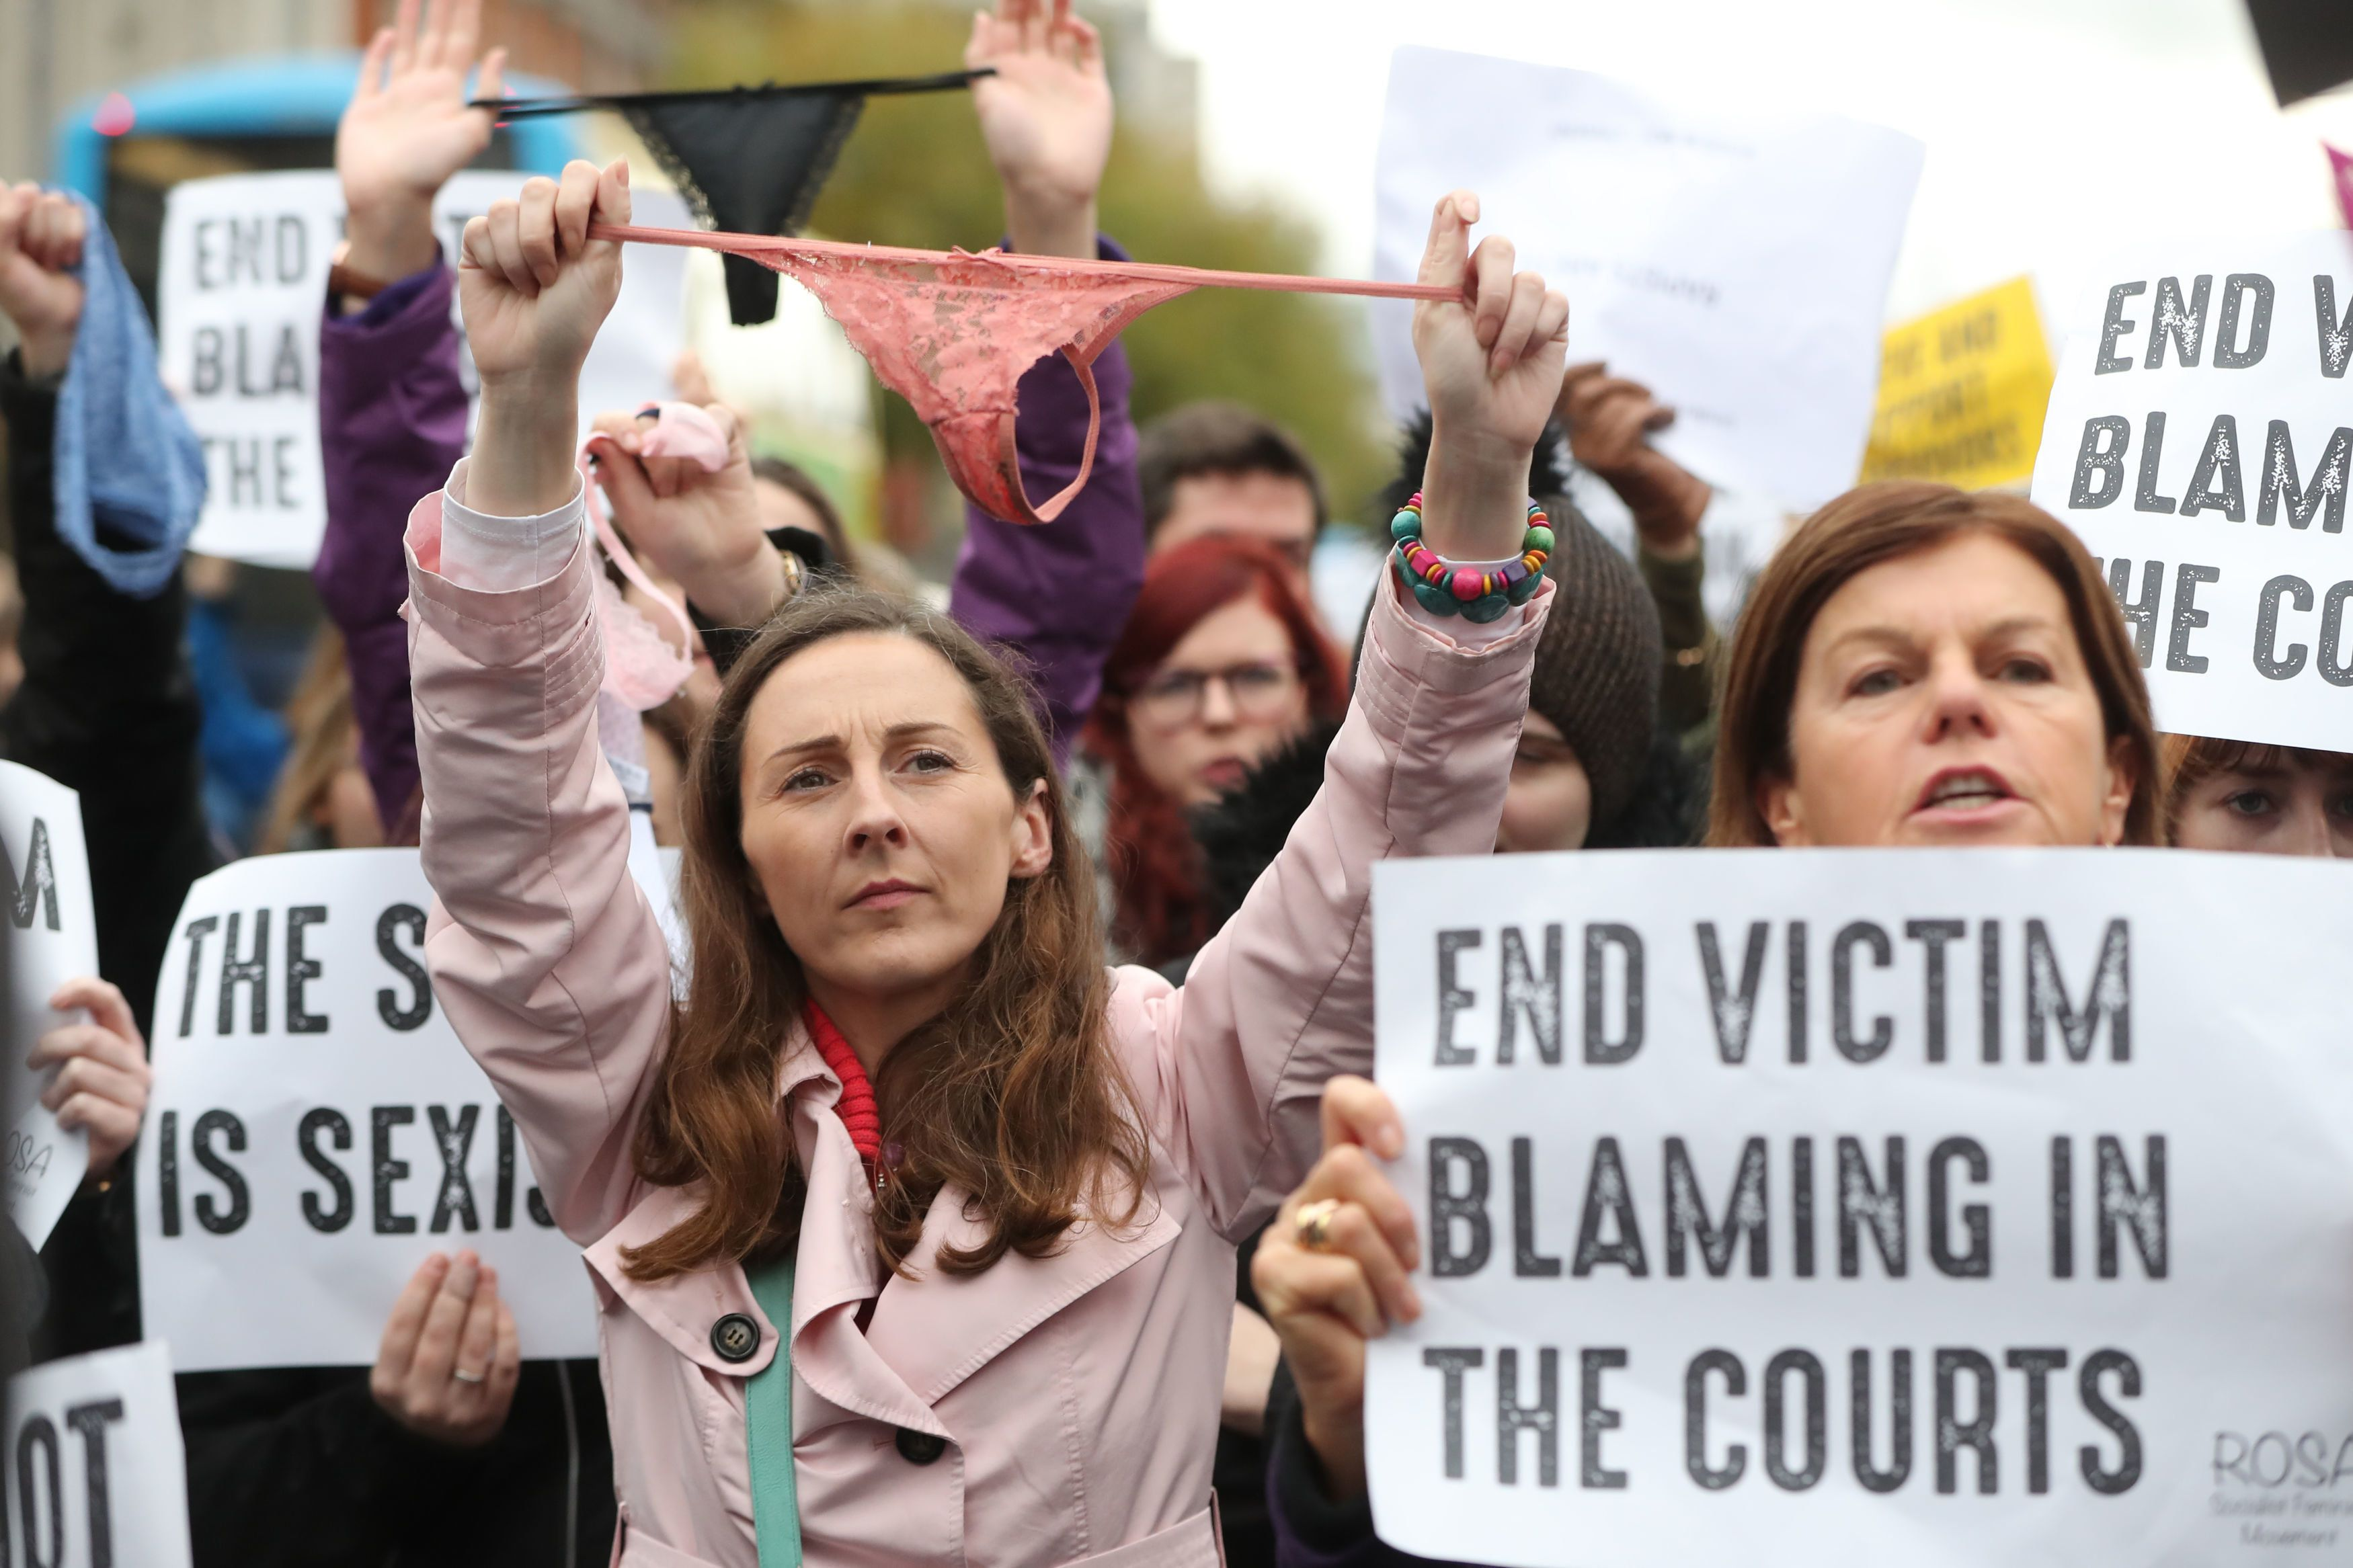 People gather for a protest in support of victims of Sexual violence on O'Connell Street, Dublin. (Photo by Niall Carson/PA Images via Getty Images)